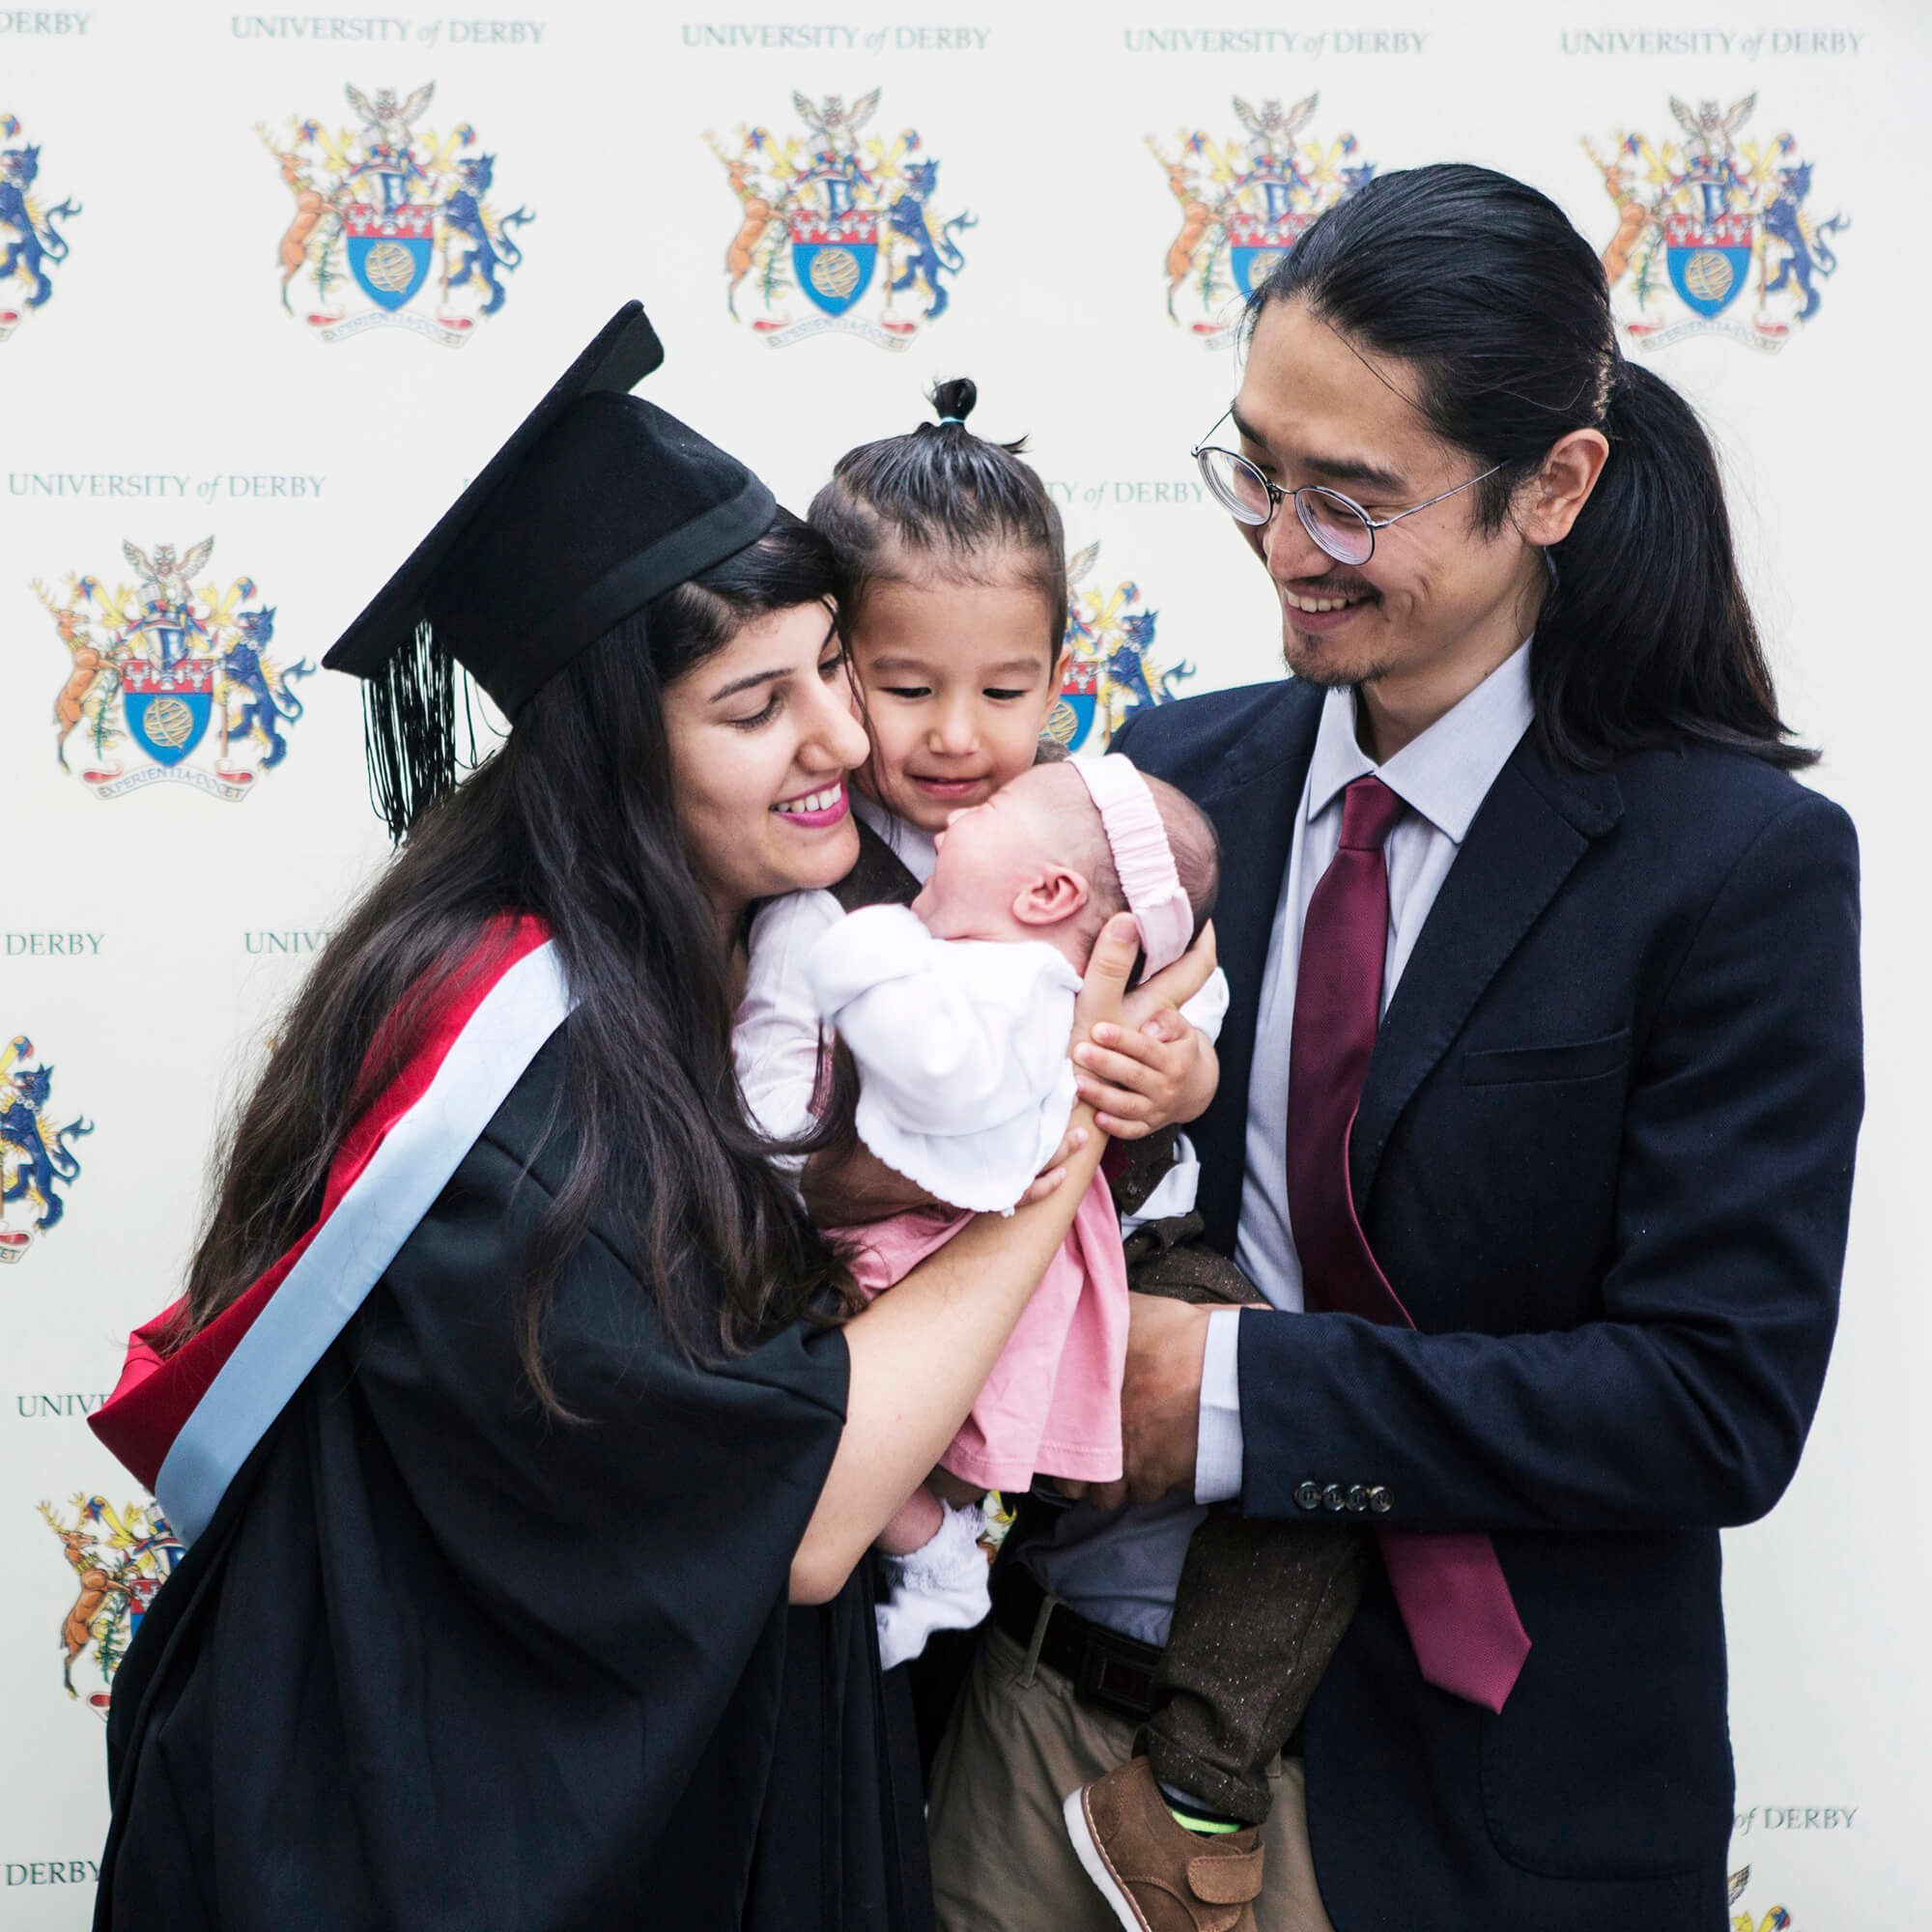 Tyra Johl at her graduation with her two children and husband